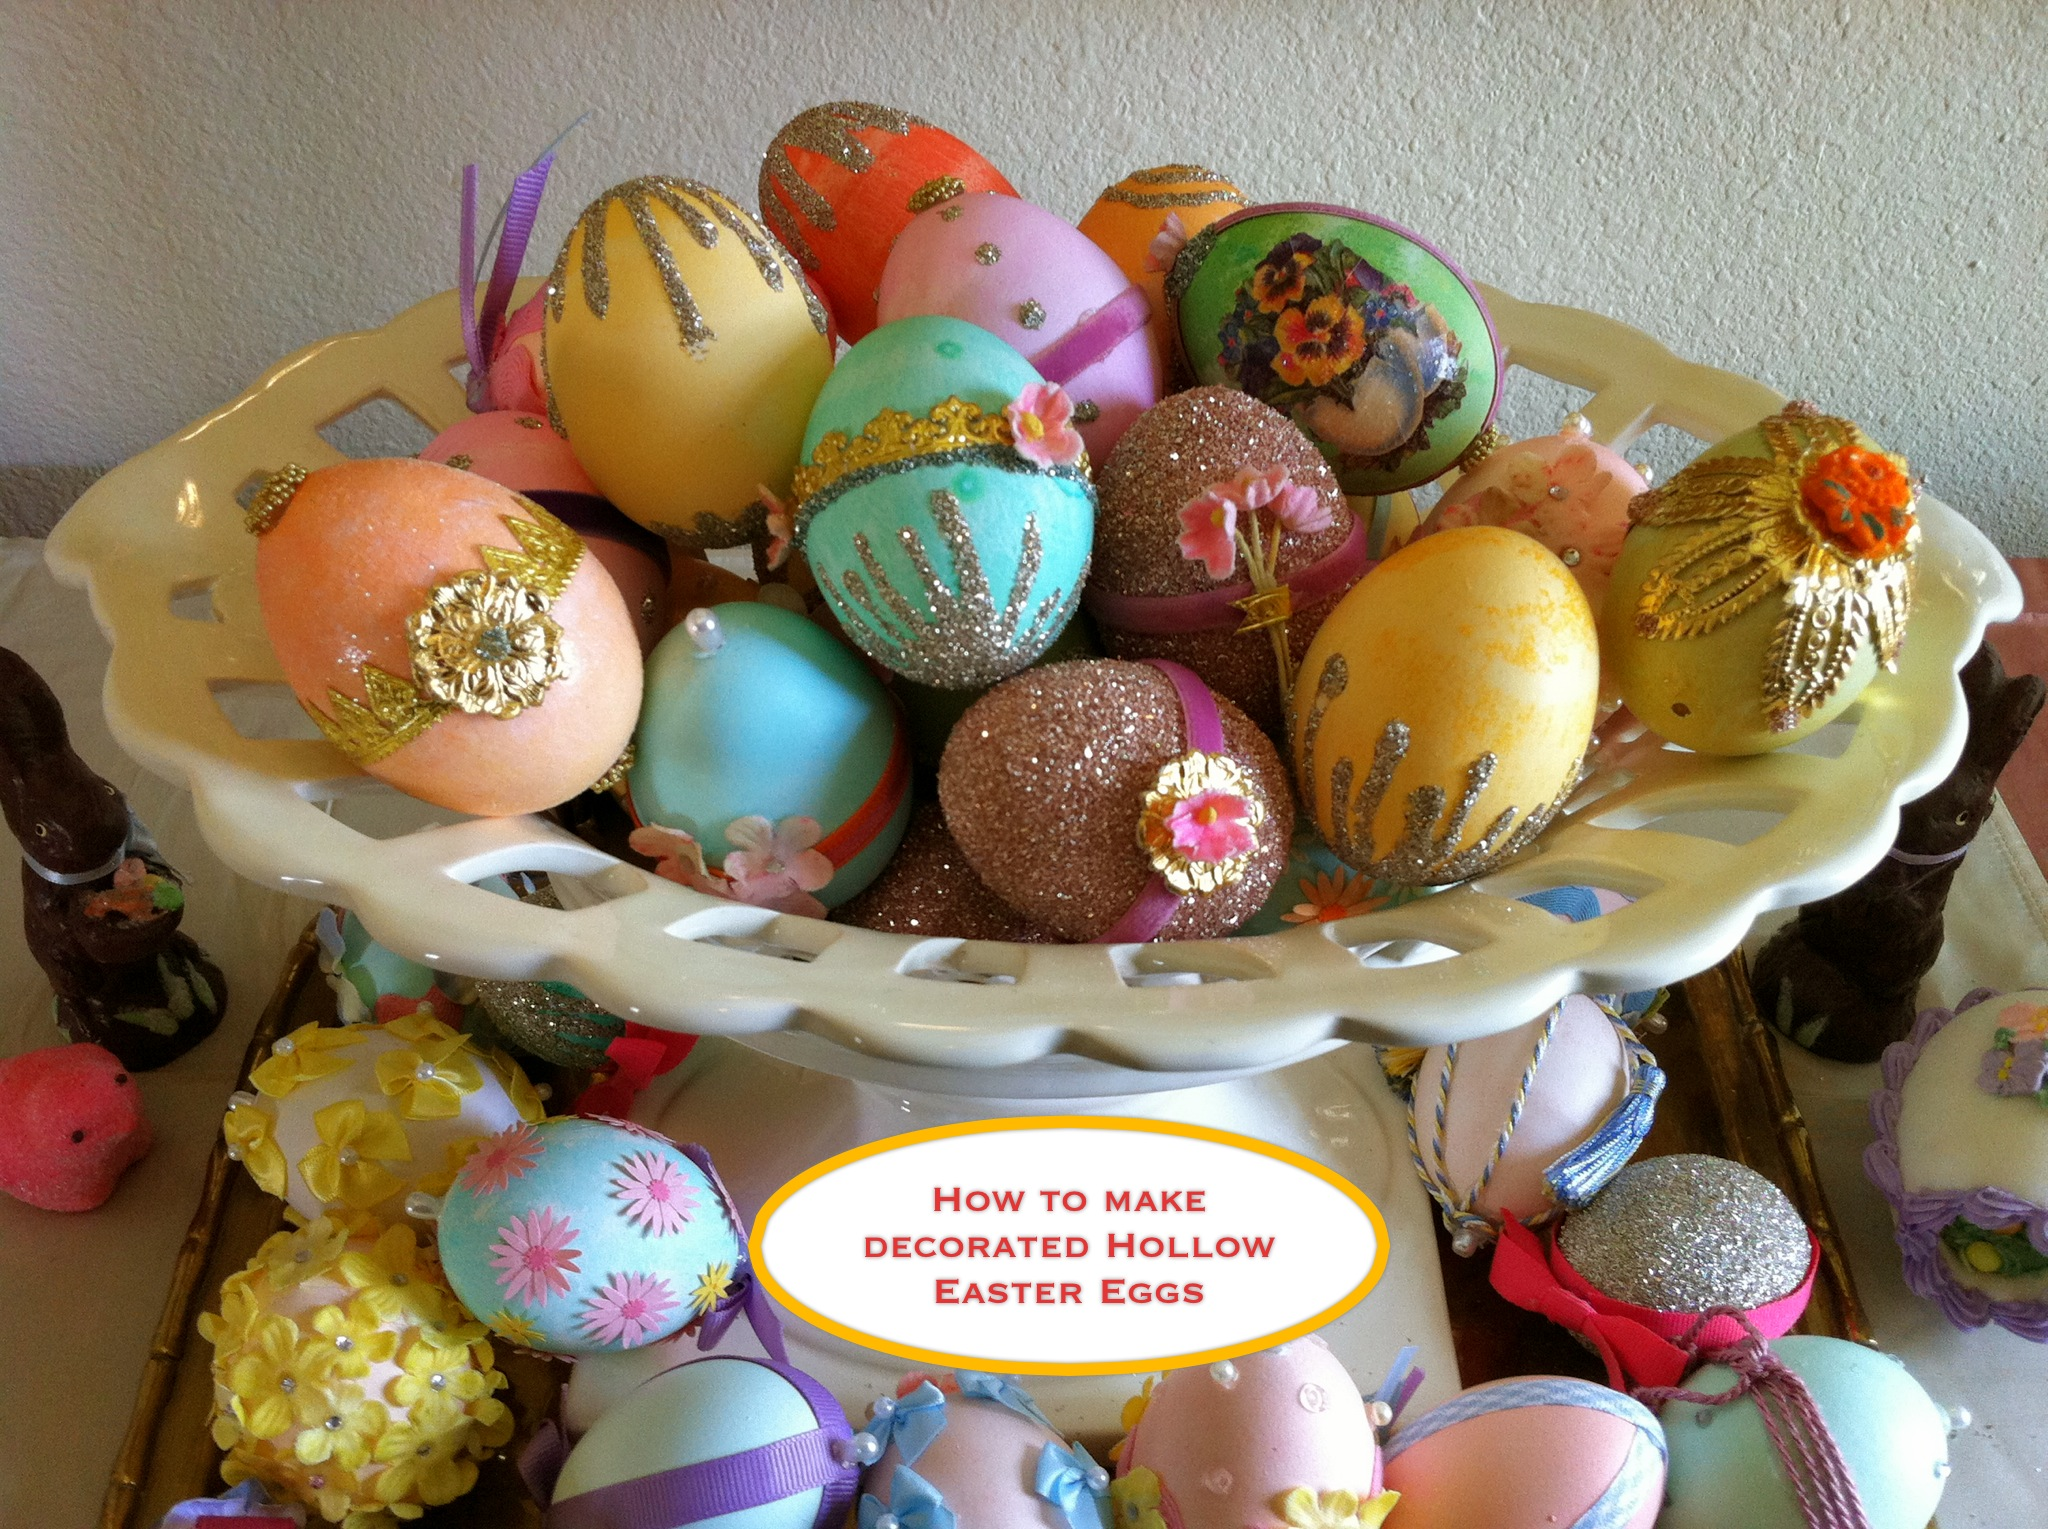 Making Decorated Hollow Easter Eggs How To Amp Sources